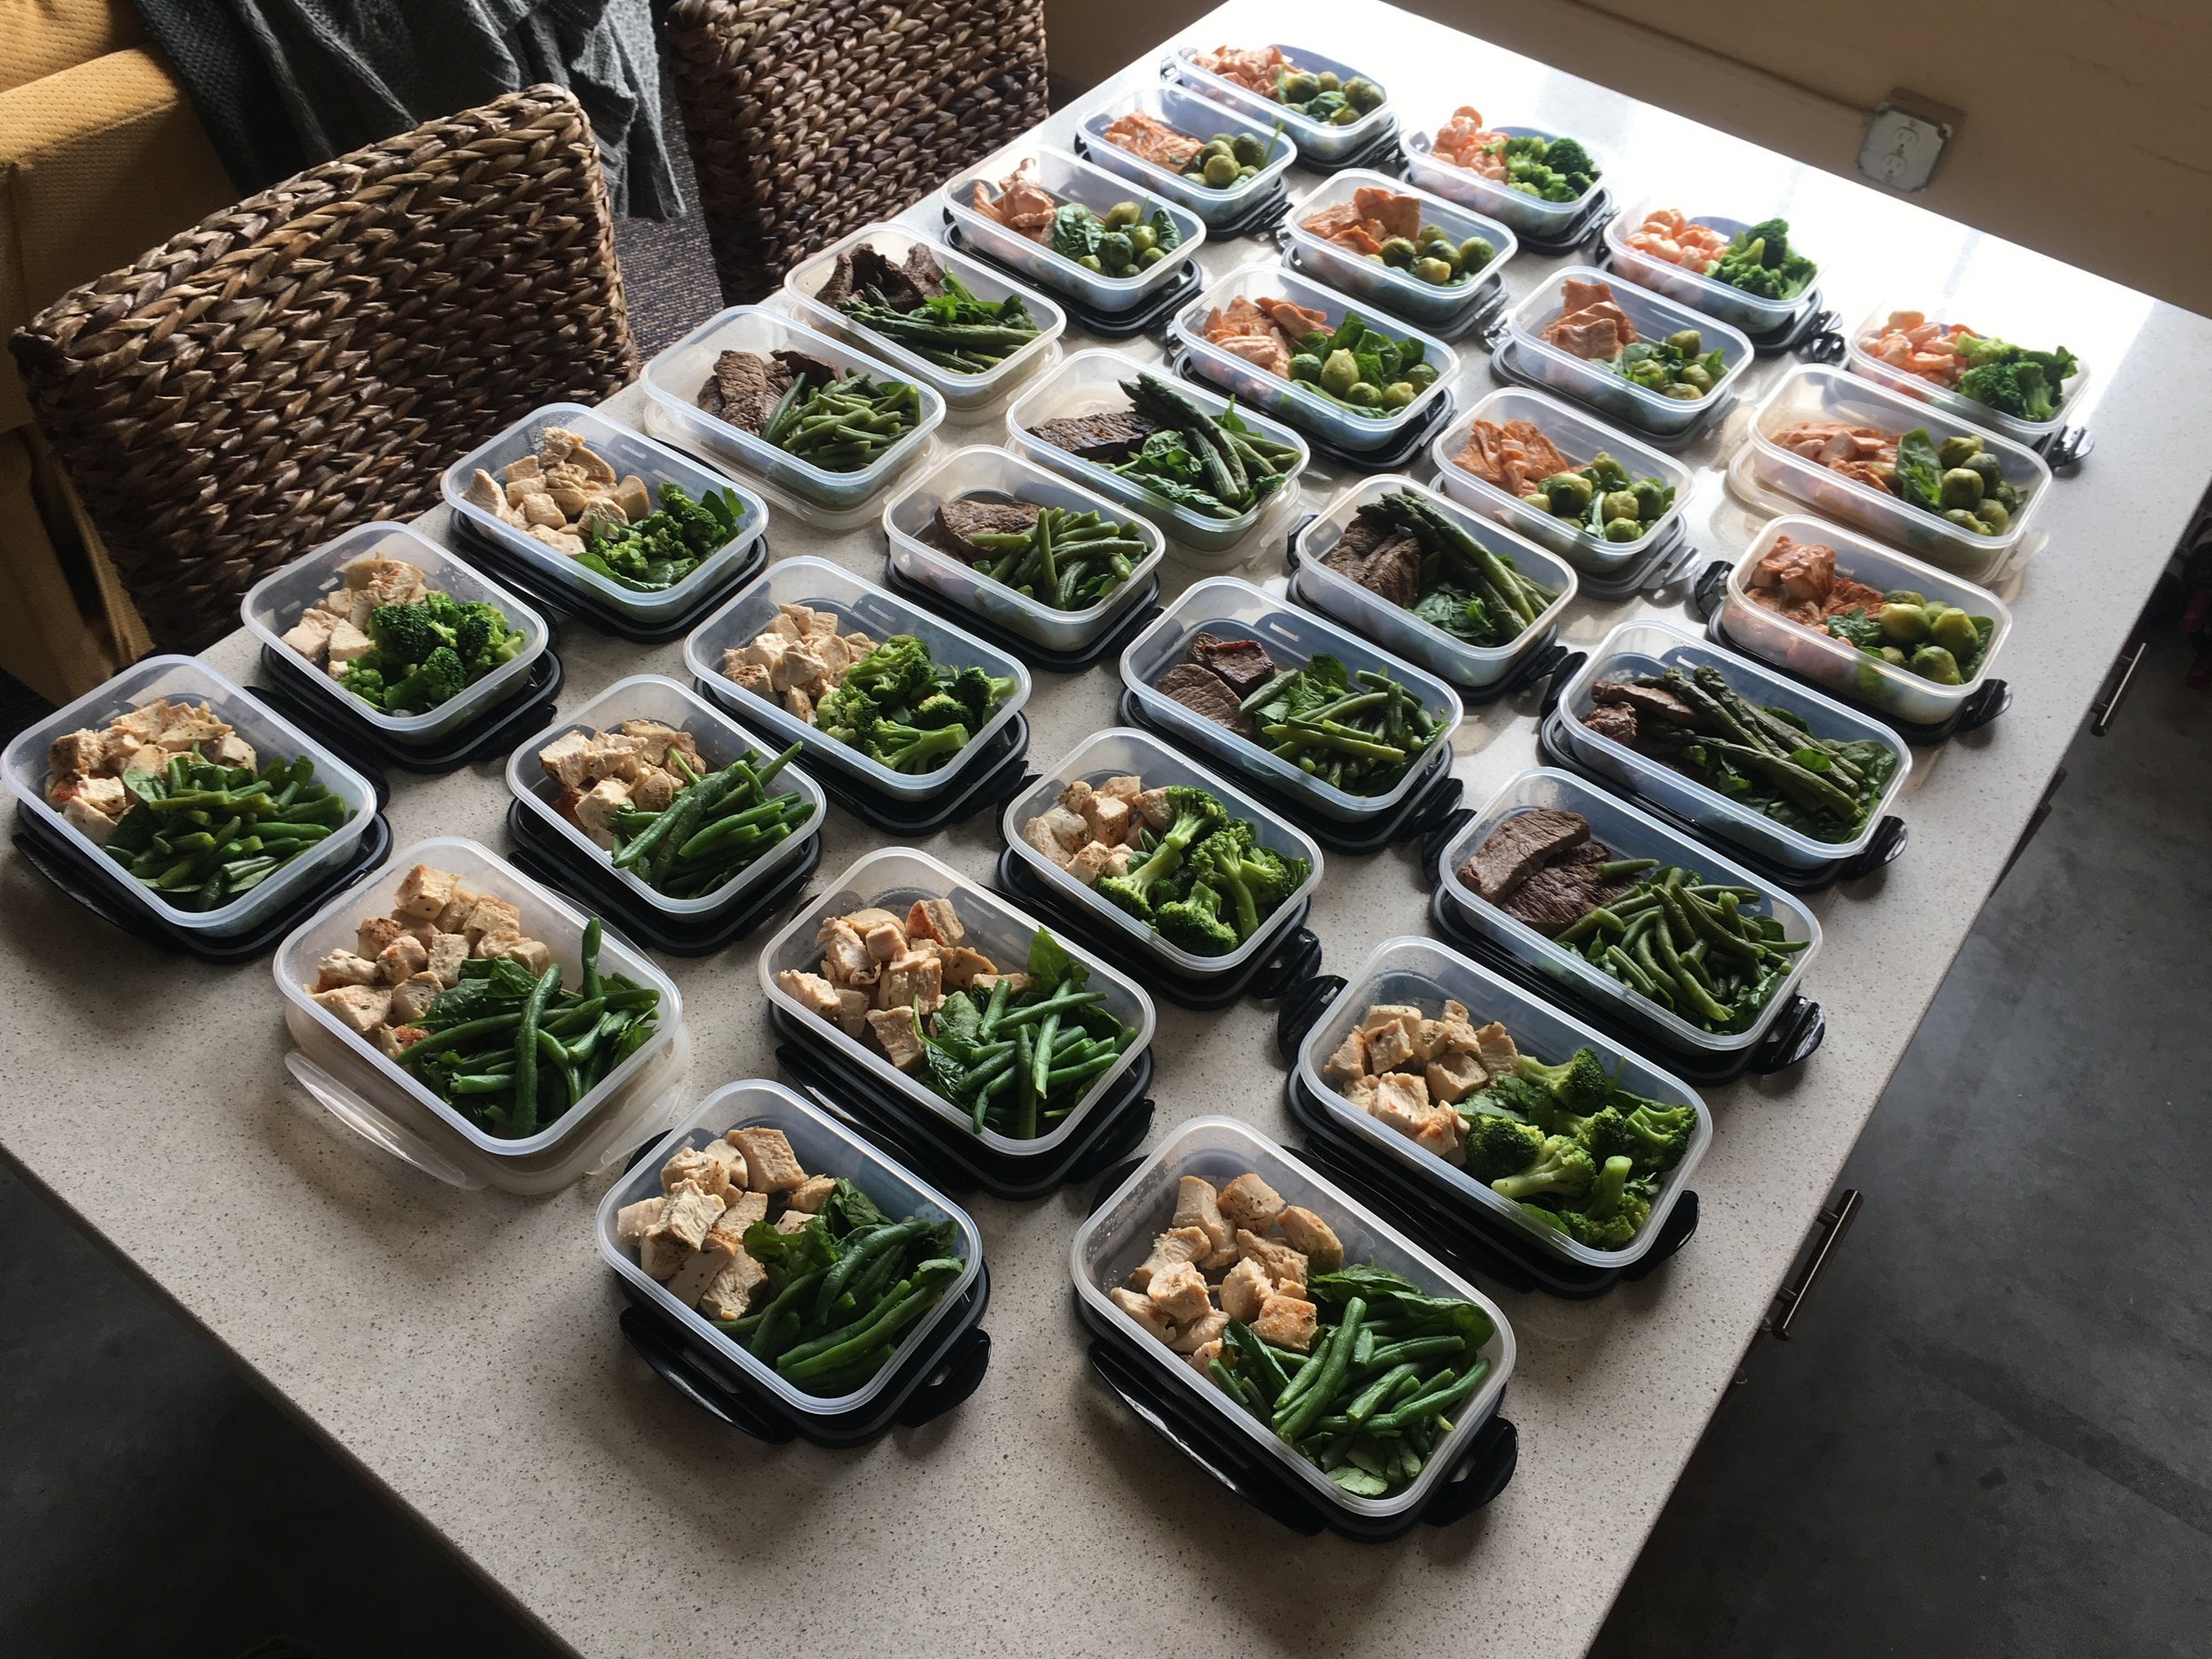 31 MEALS in under TWO HOURS!